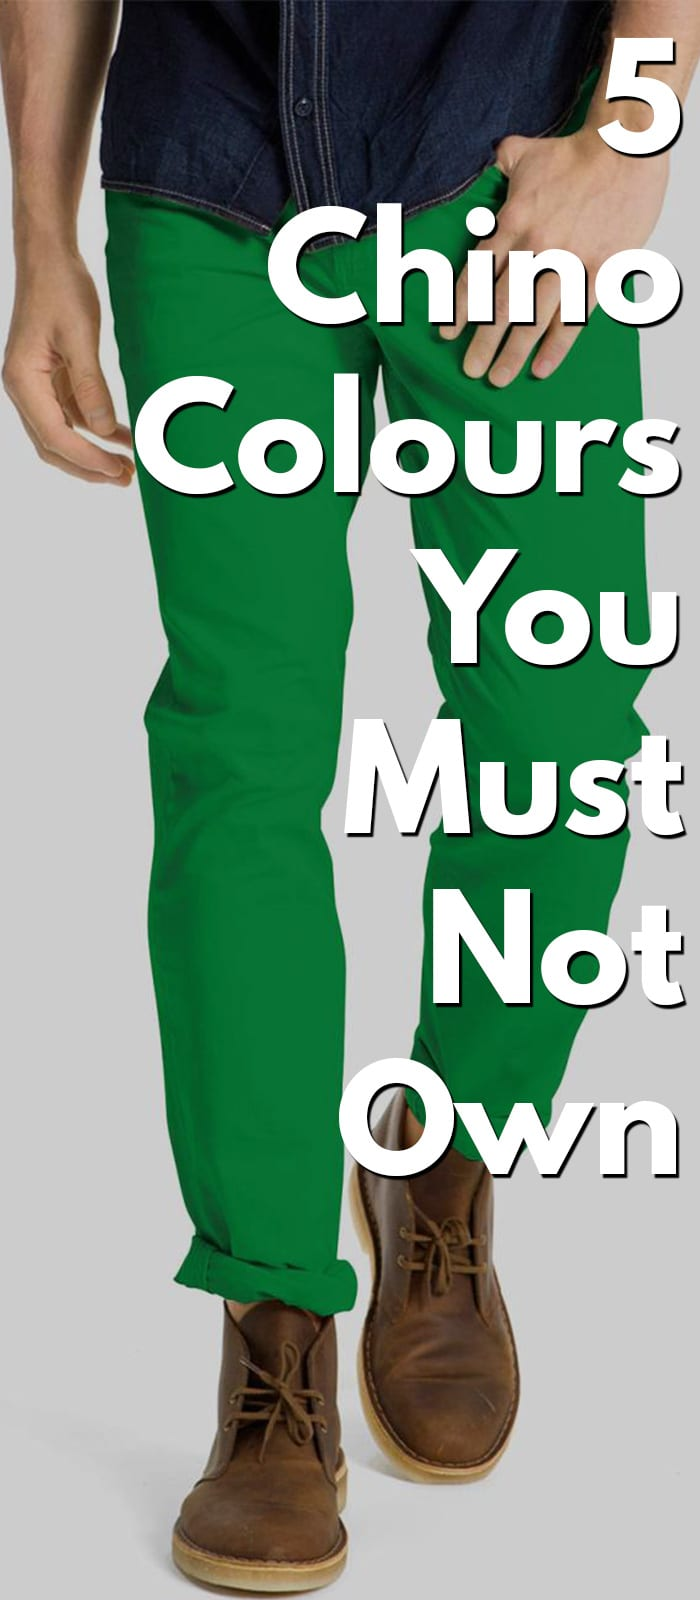 5 chino colours you should not buy